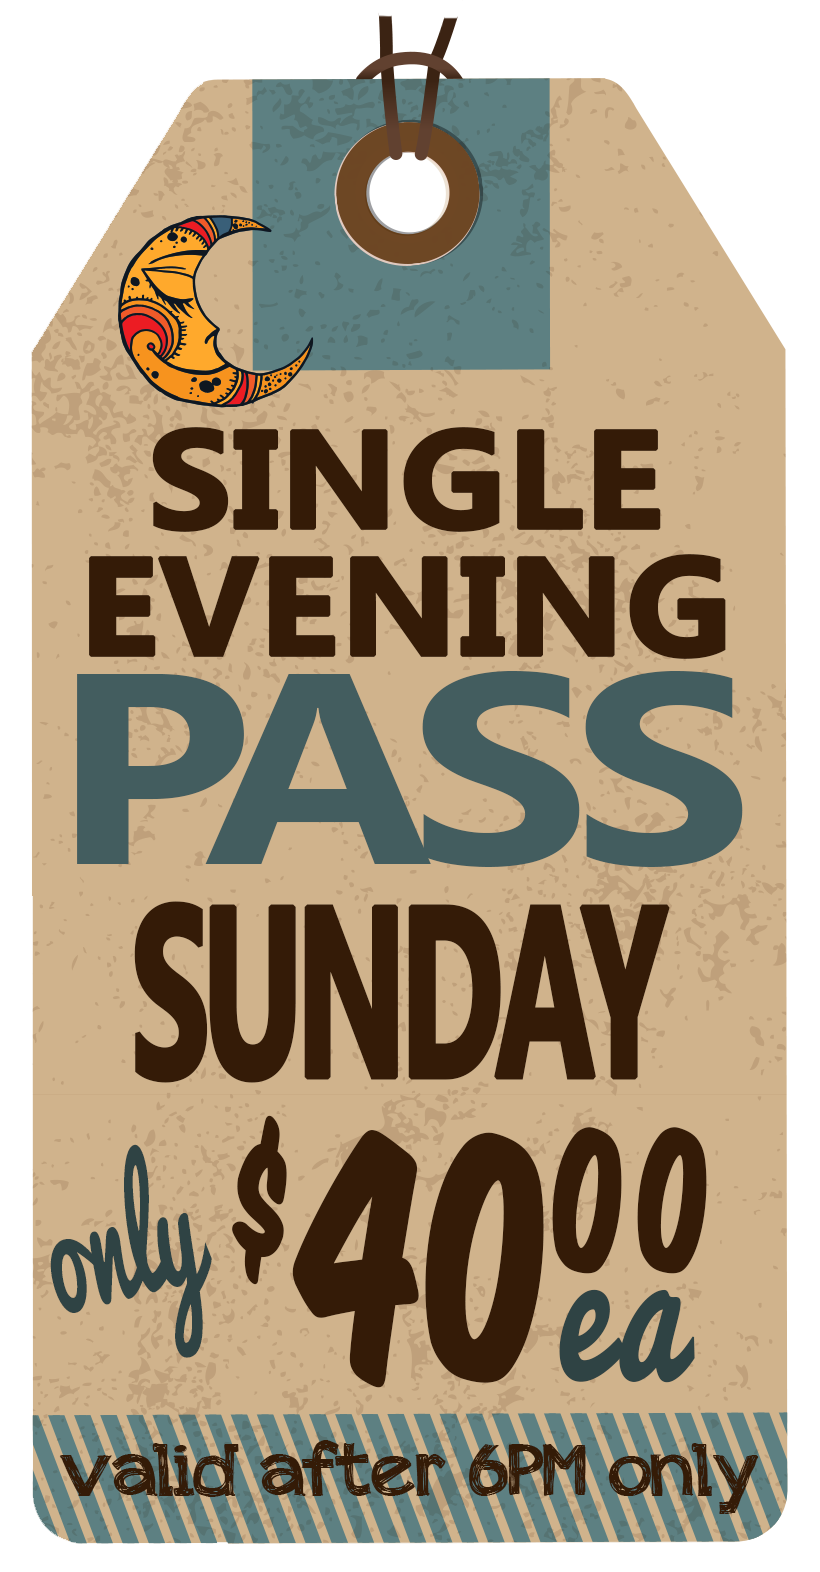 EVENING Sunday Pass - $40.00